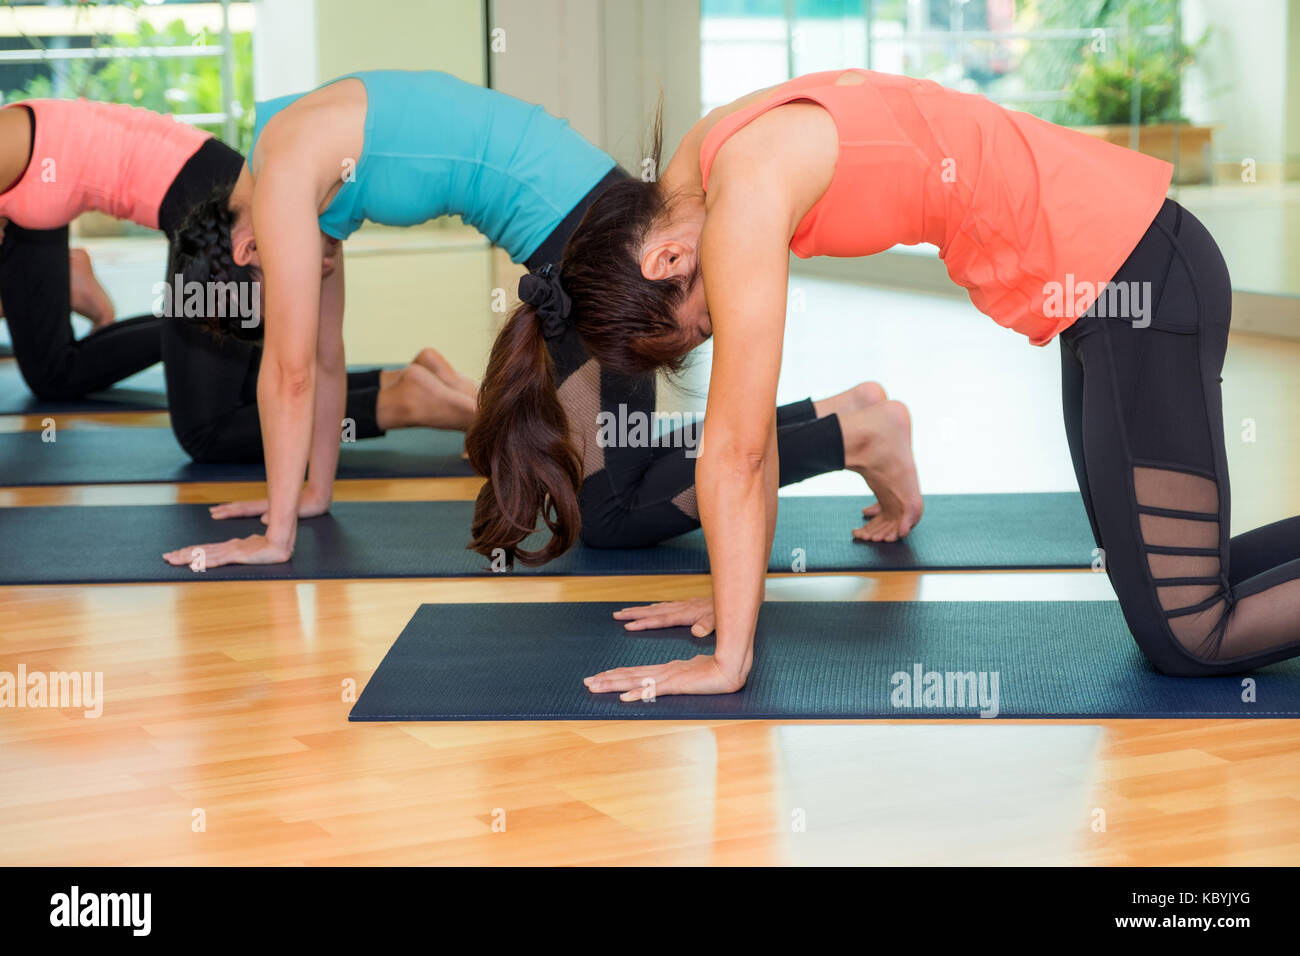 Group of people doing yoga cat poses in studio training room,Balasana poses,wellness and healthy lifestyle - Stock Image